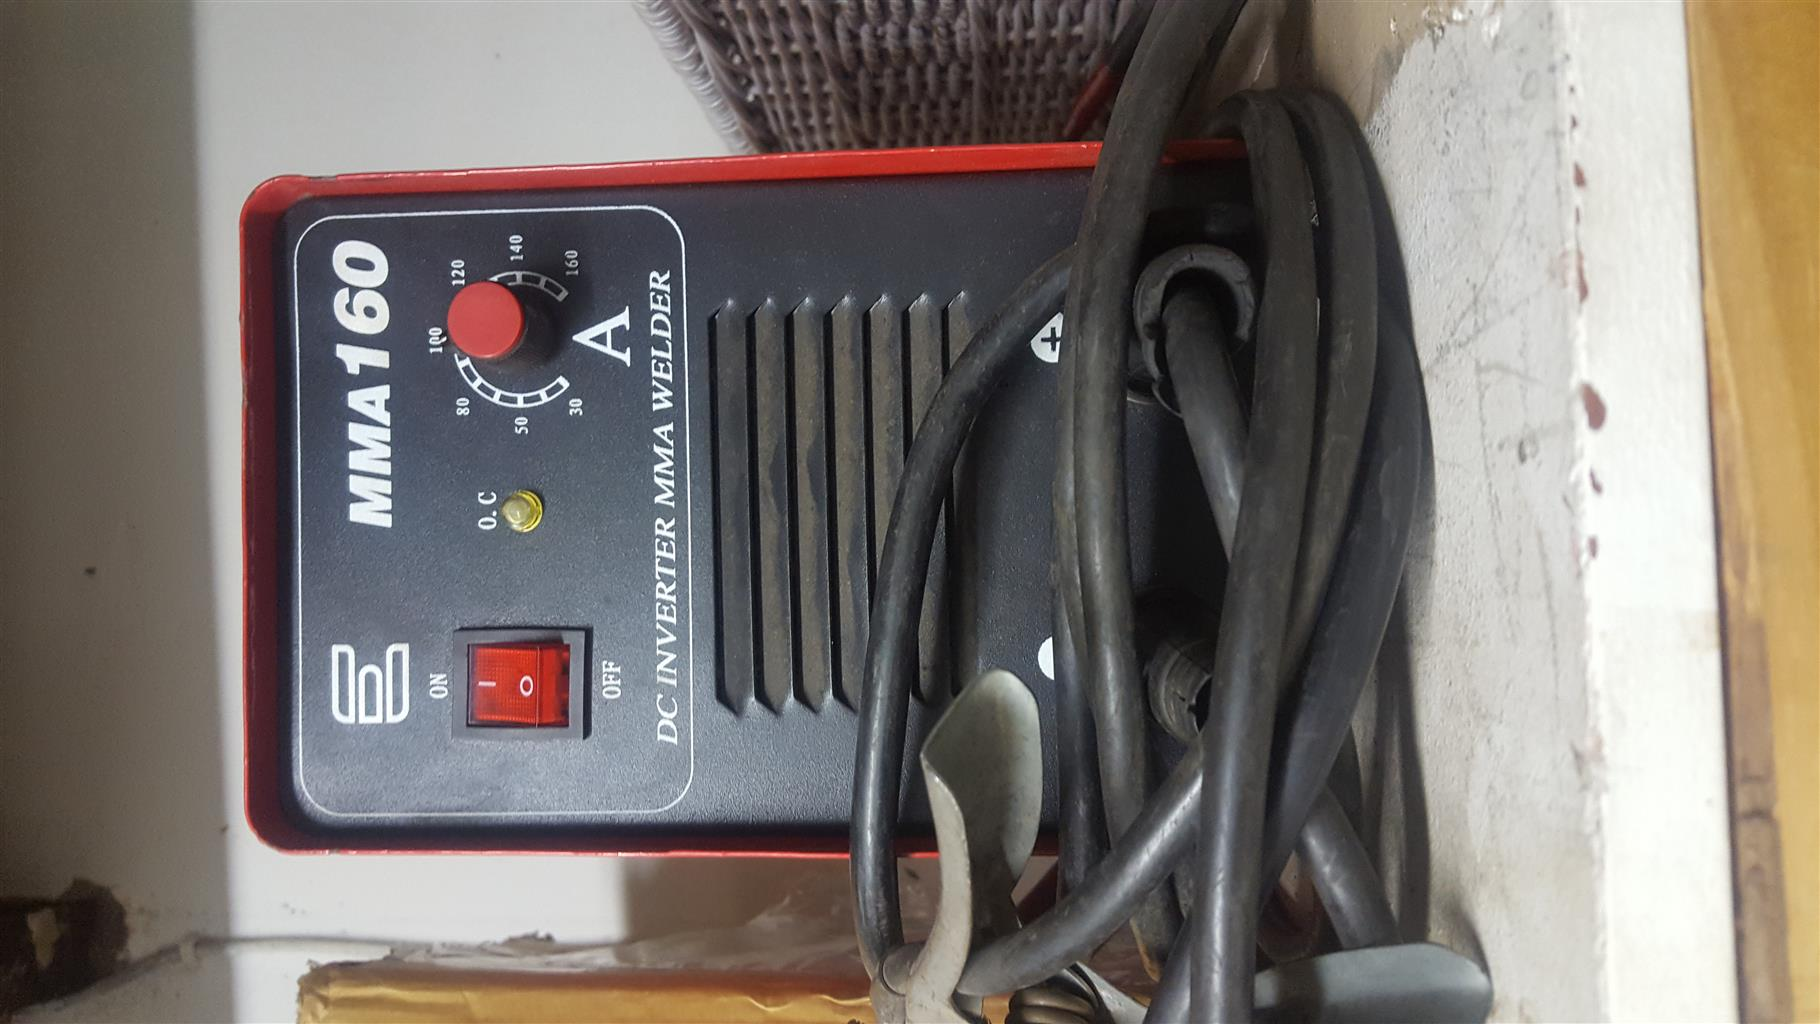 Eurasia Inverter / Welder/ Welding Machine 160 Amp MMA